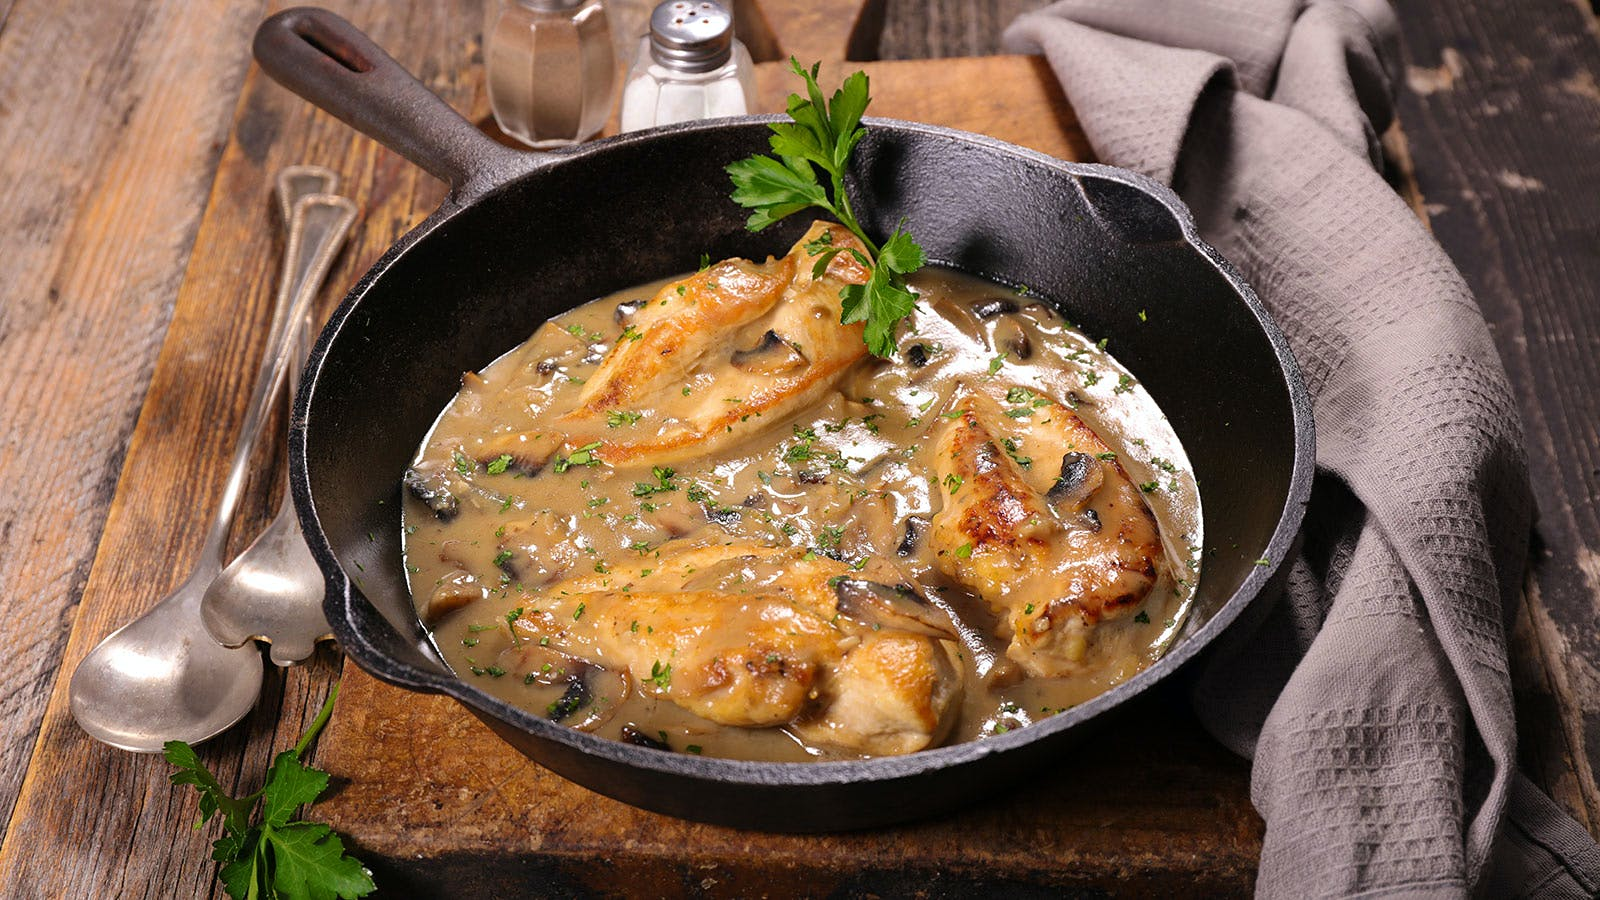 5 Favorite Recipes: Super-Easy Chicken Dishes